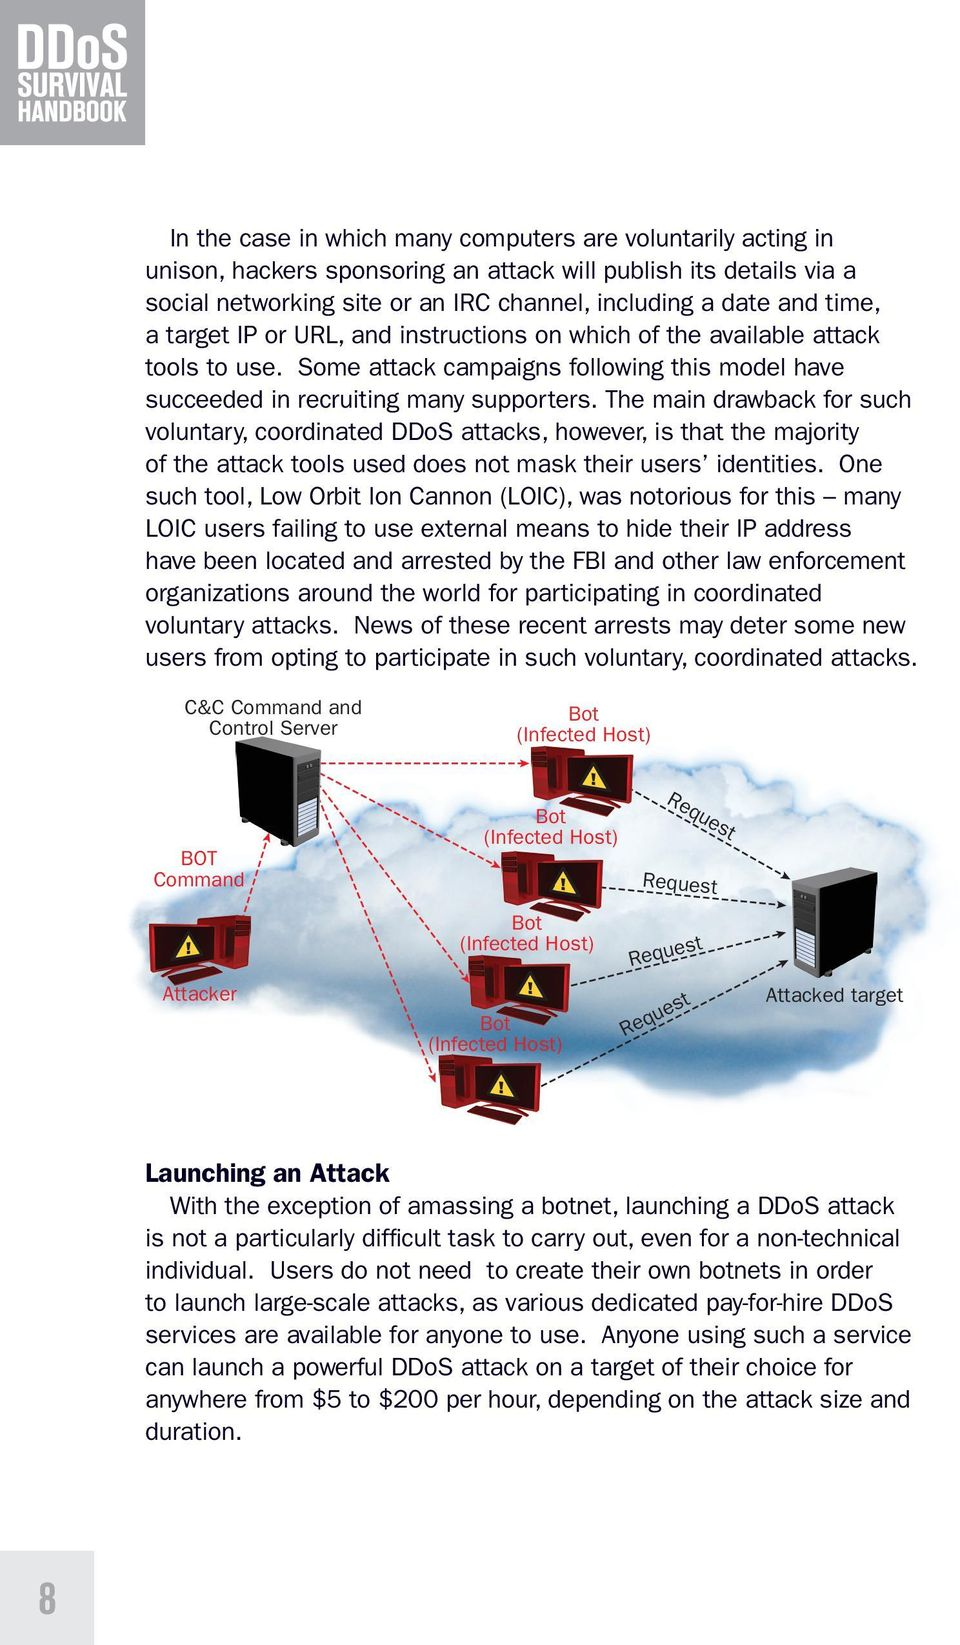 The main drawback for such voluntary, coordinated DDoS attacks, however, is that the majority of the attack tools used does not mask their users identities.